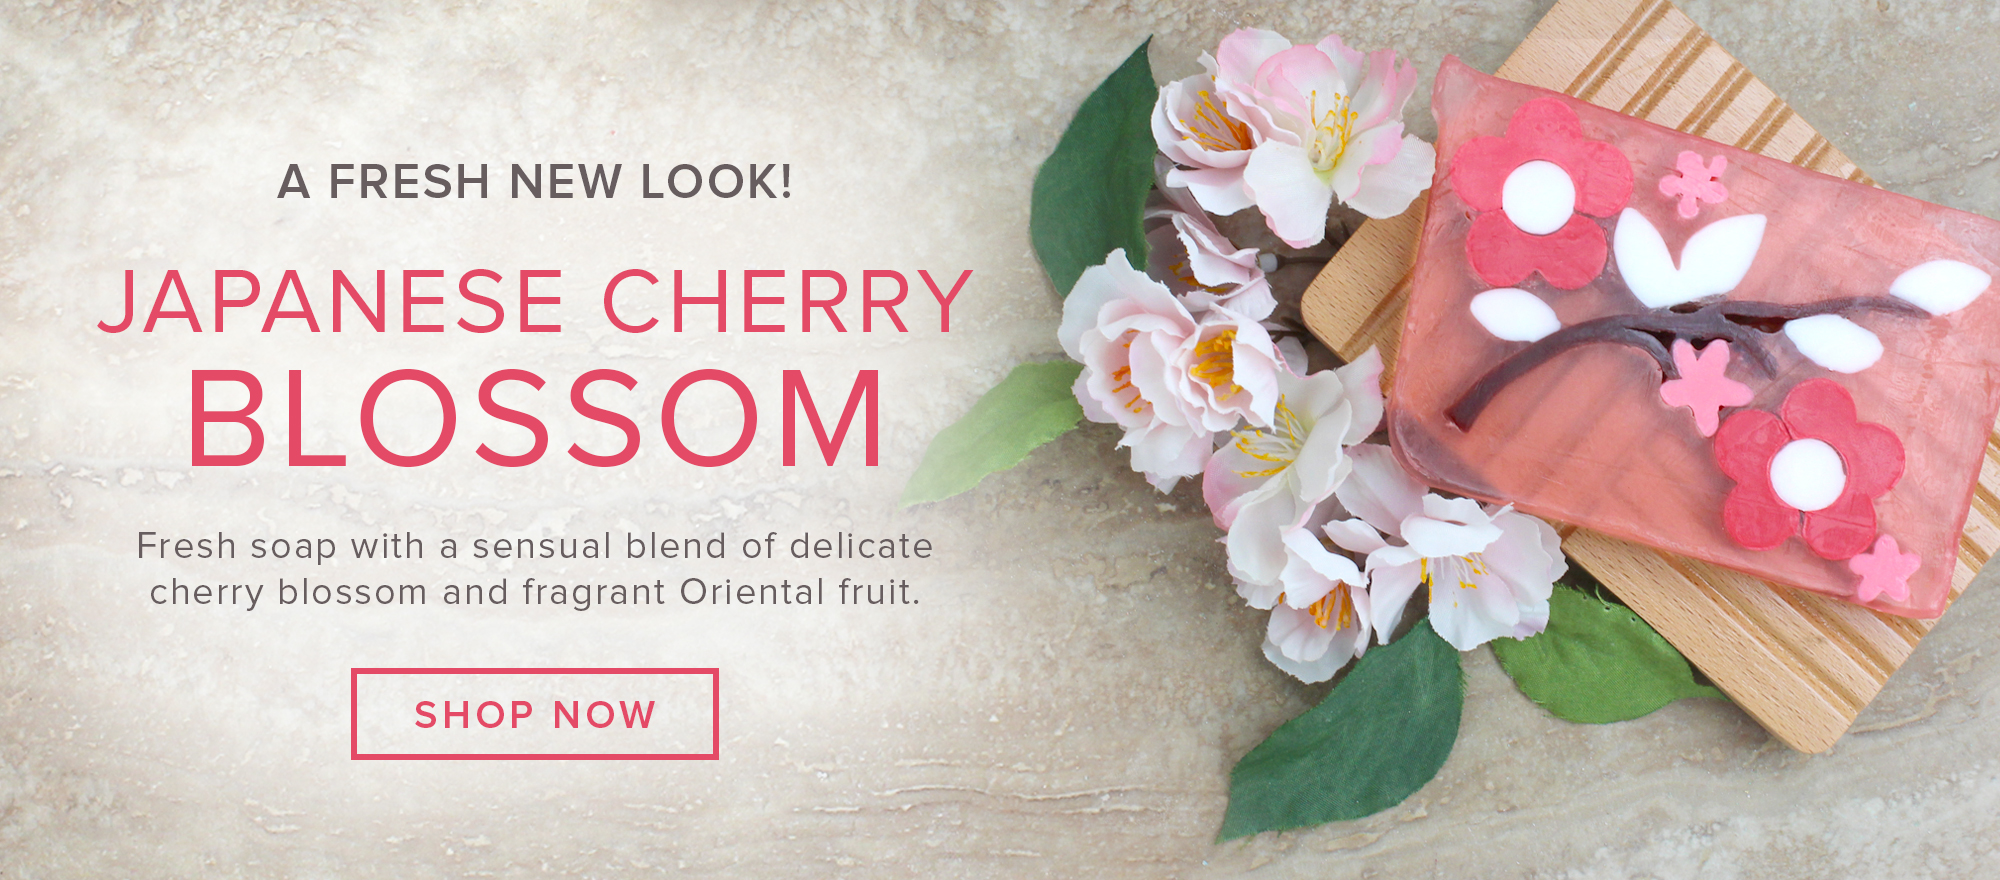 NEW Japanese Cherry Blossom Soap